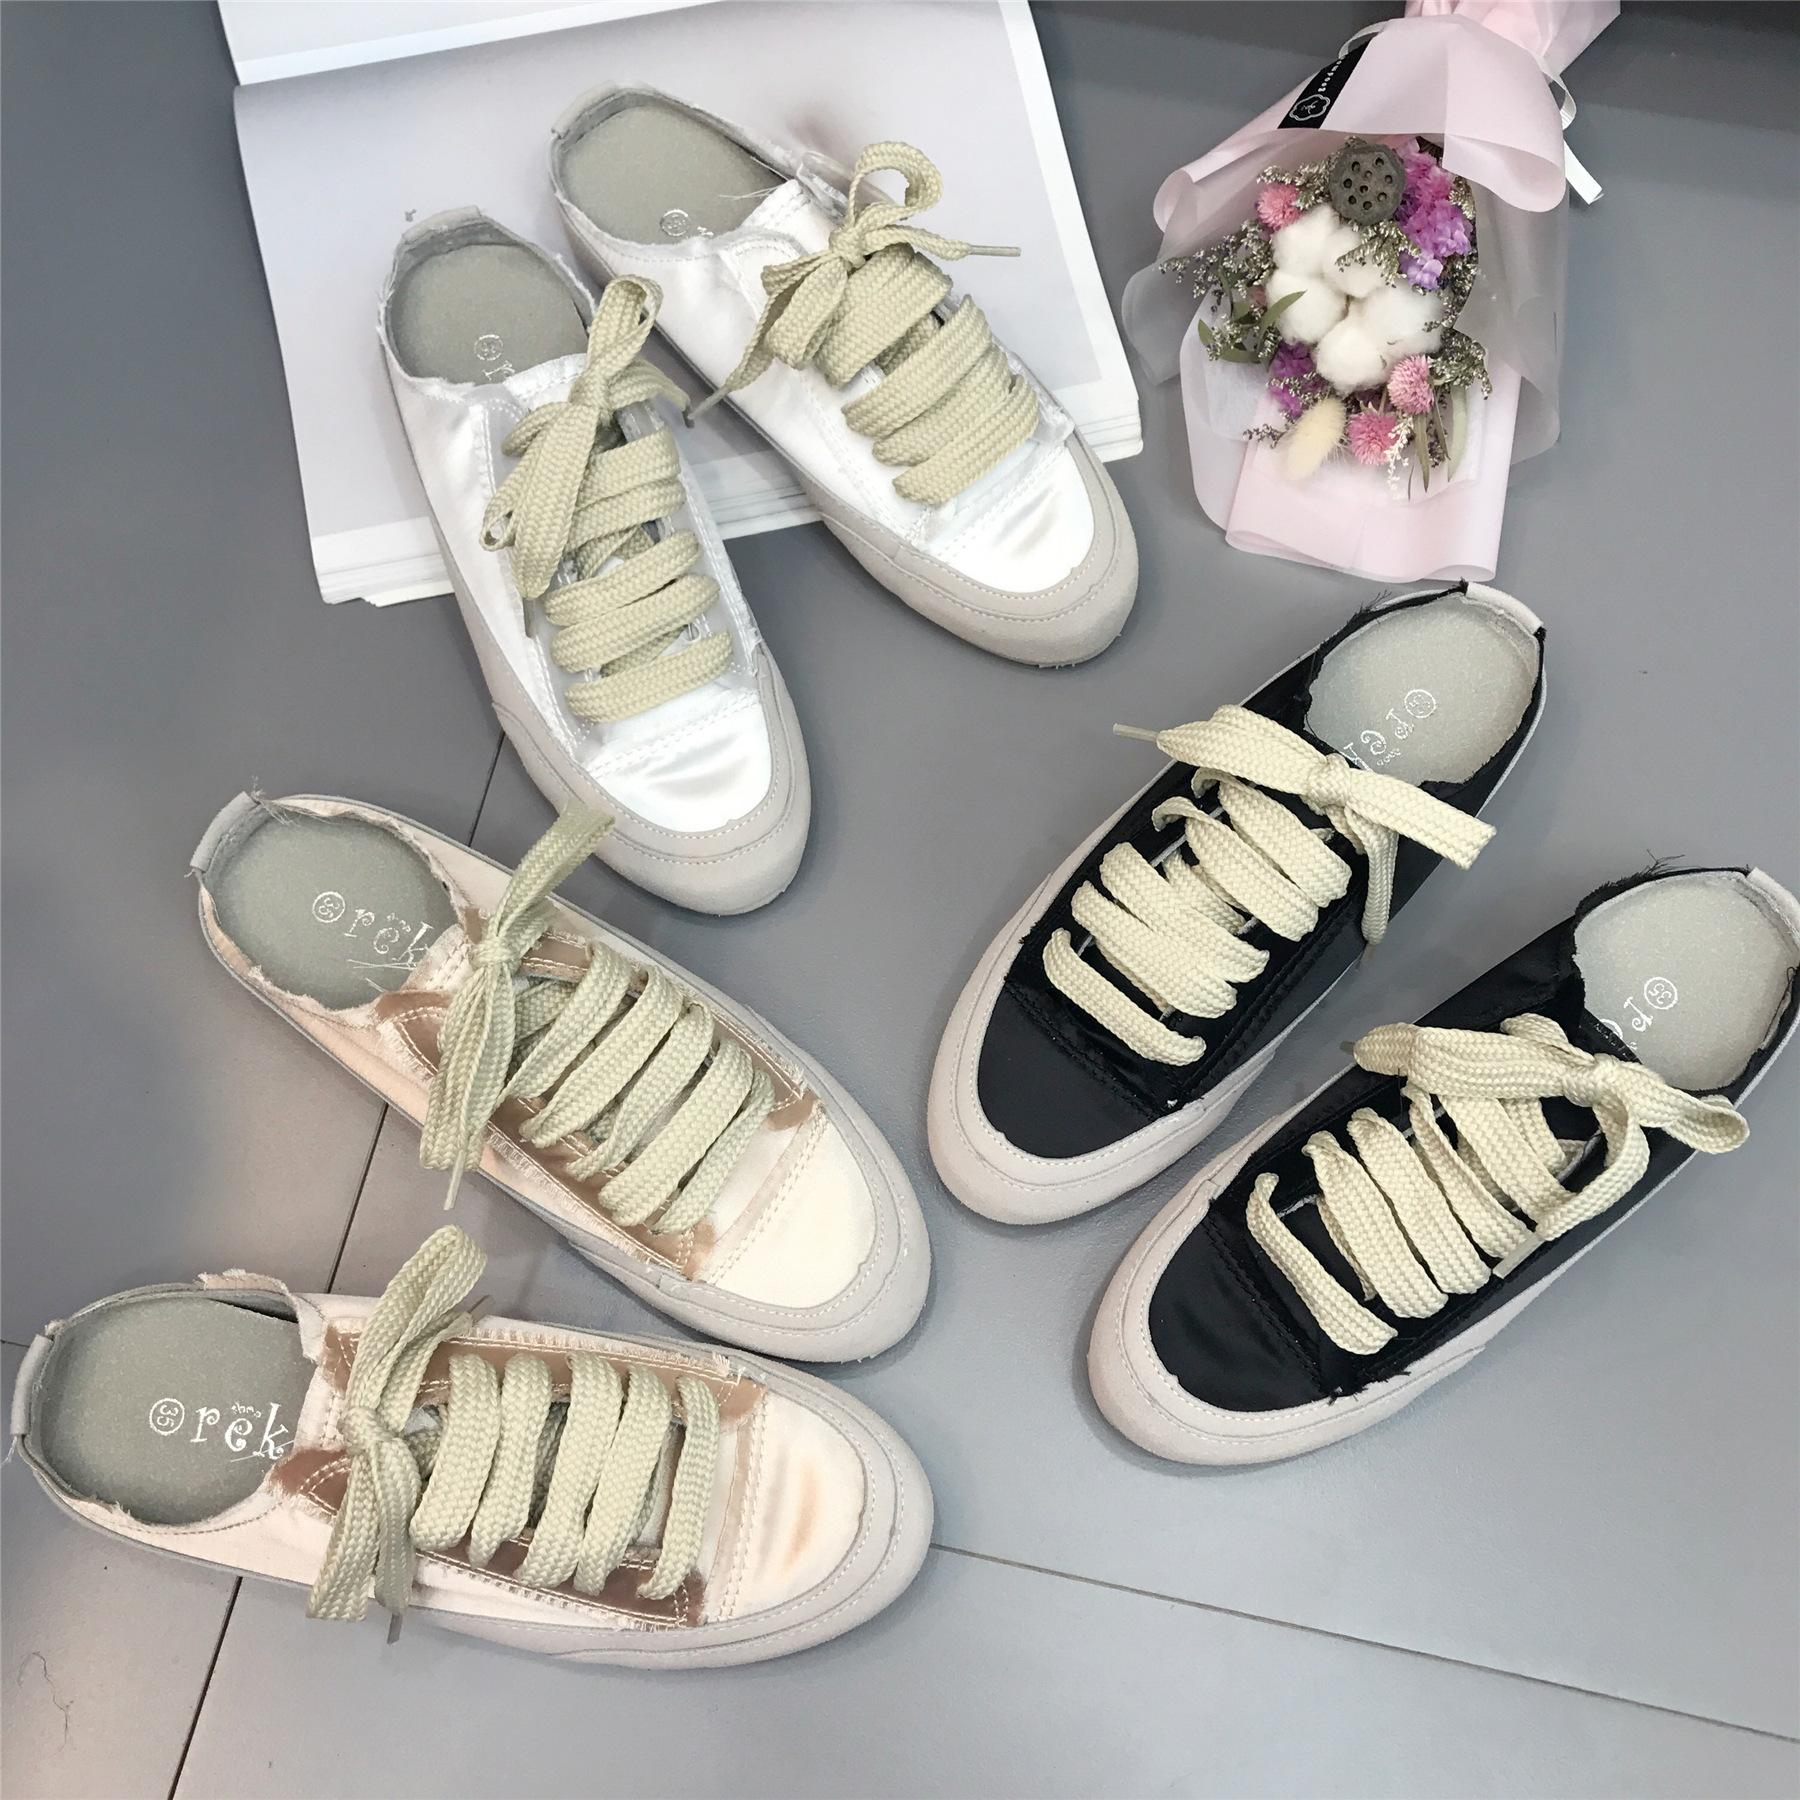 SWYIVY Silk Sneakers Shoes Woman Half Slippers 2018 Autumn Female Casual  Shoes Comfortable Brand Design Lay Slip On Pedal Shoes Boys Slippers Acorn  Slippers ... 548b6fa64227